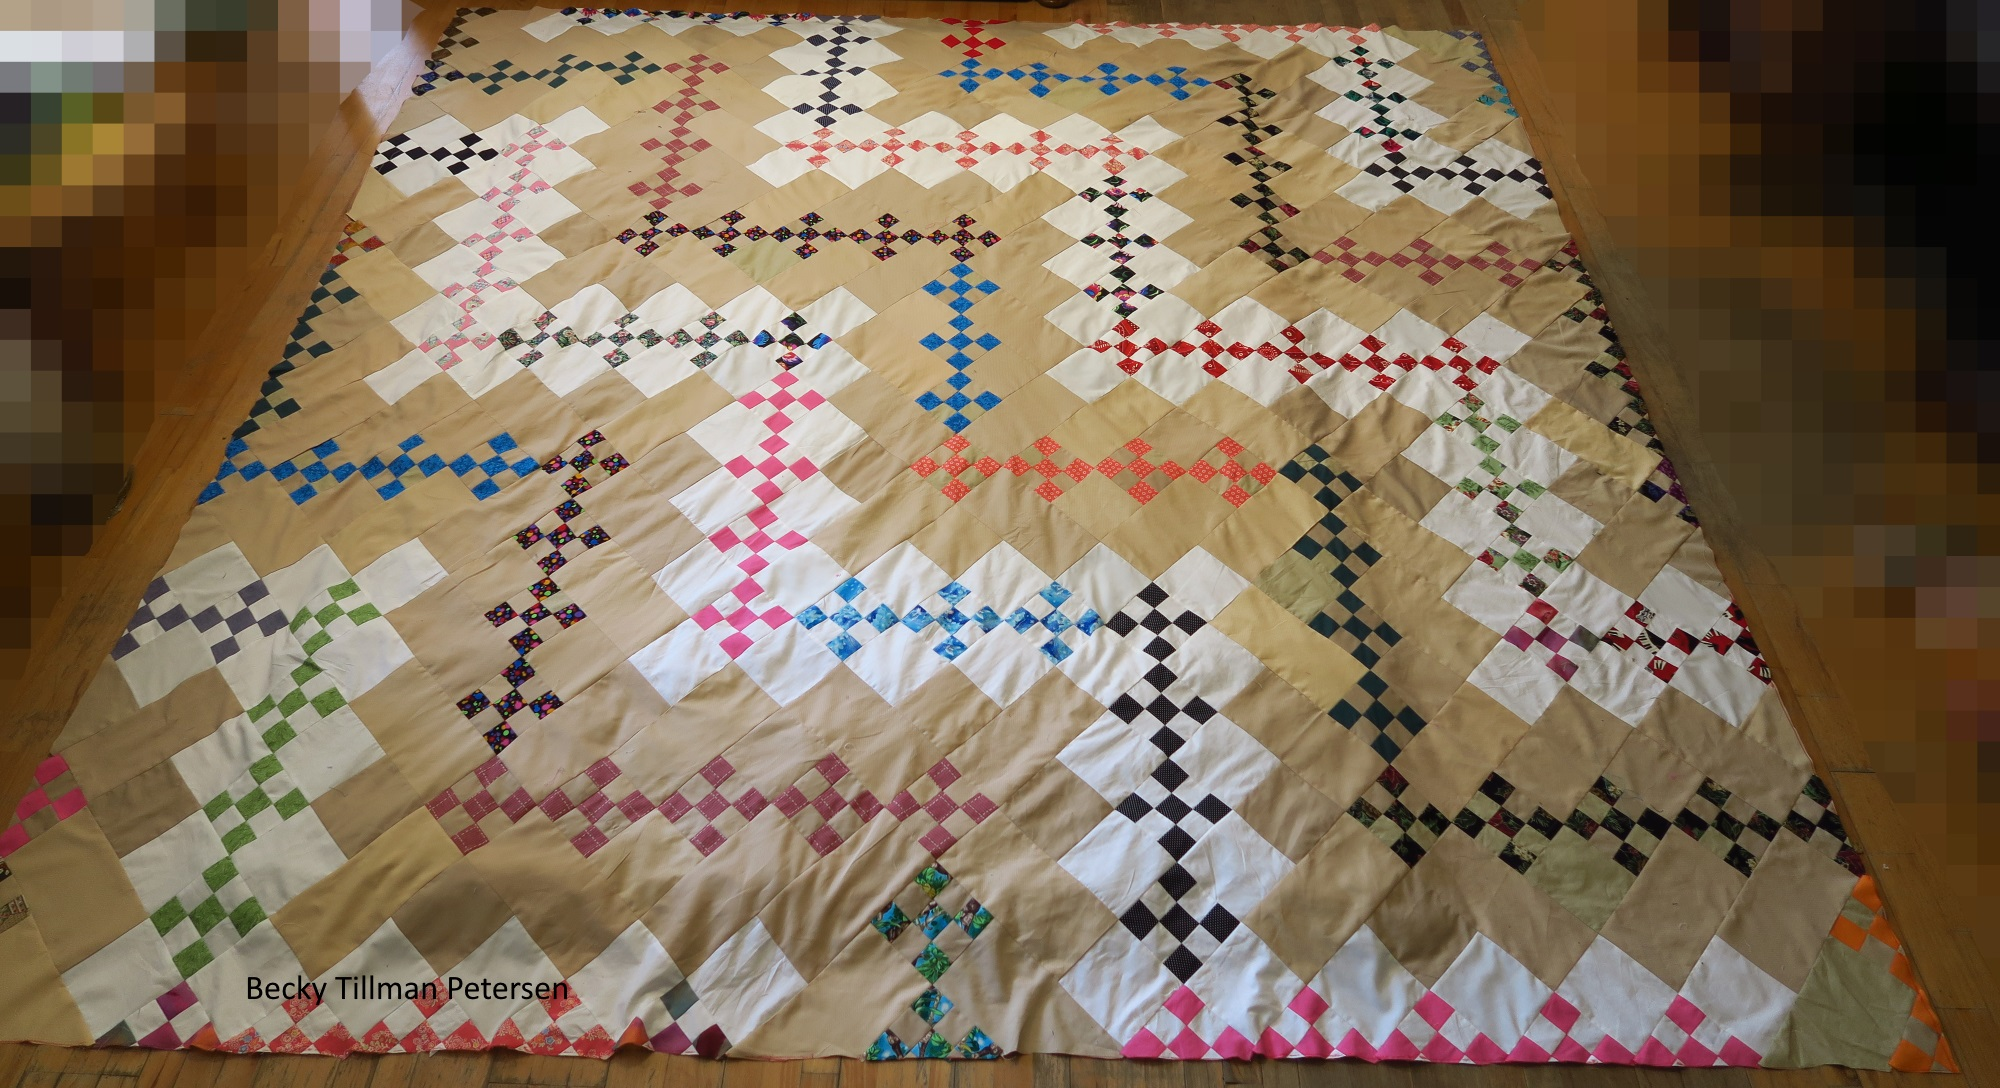 Zig-zag pattern quilt on wooden floor. Squares are arranged on quilt in a zig zag fashion four different times, giving the impression of lightning